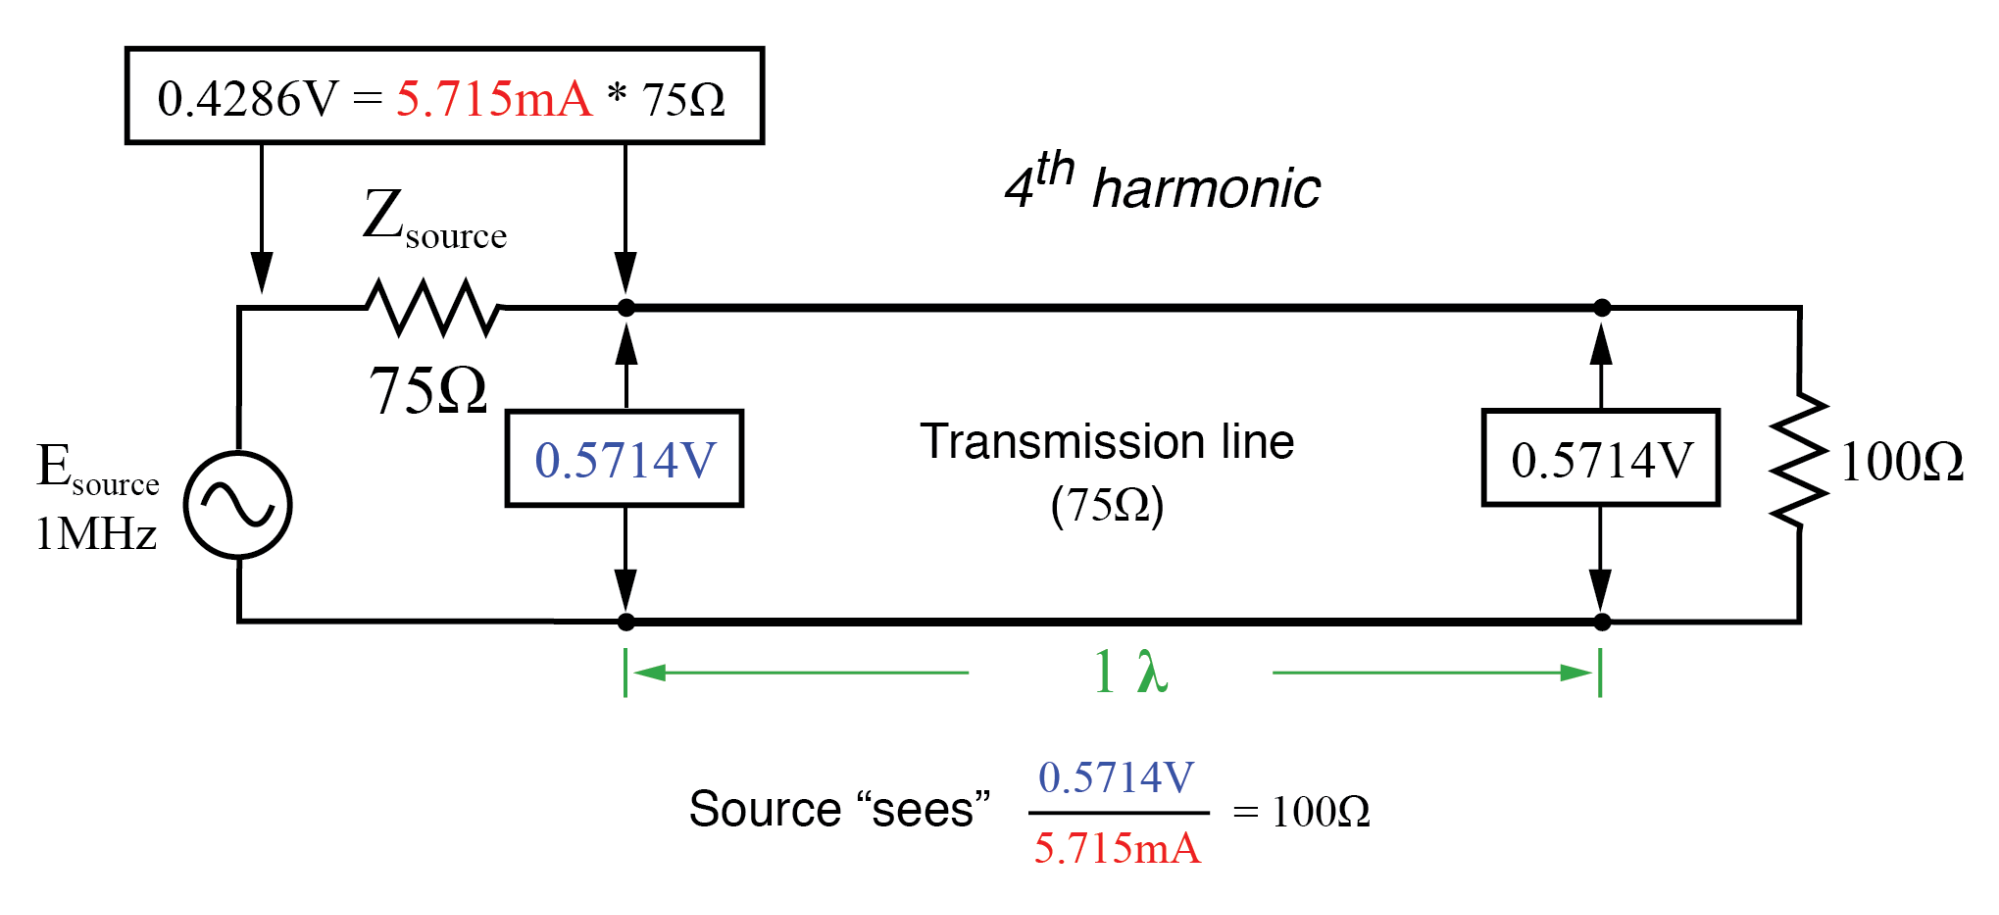 Source sees 100 Ω reflected from 100 Ω load at end of full-wavelength line (same as half-wavelength).